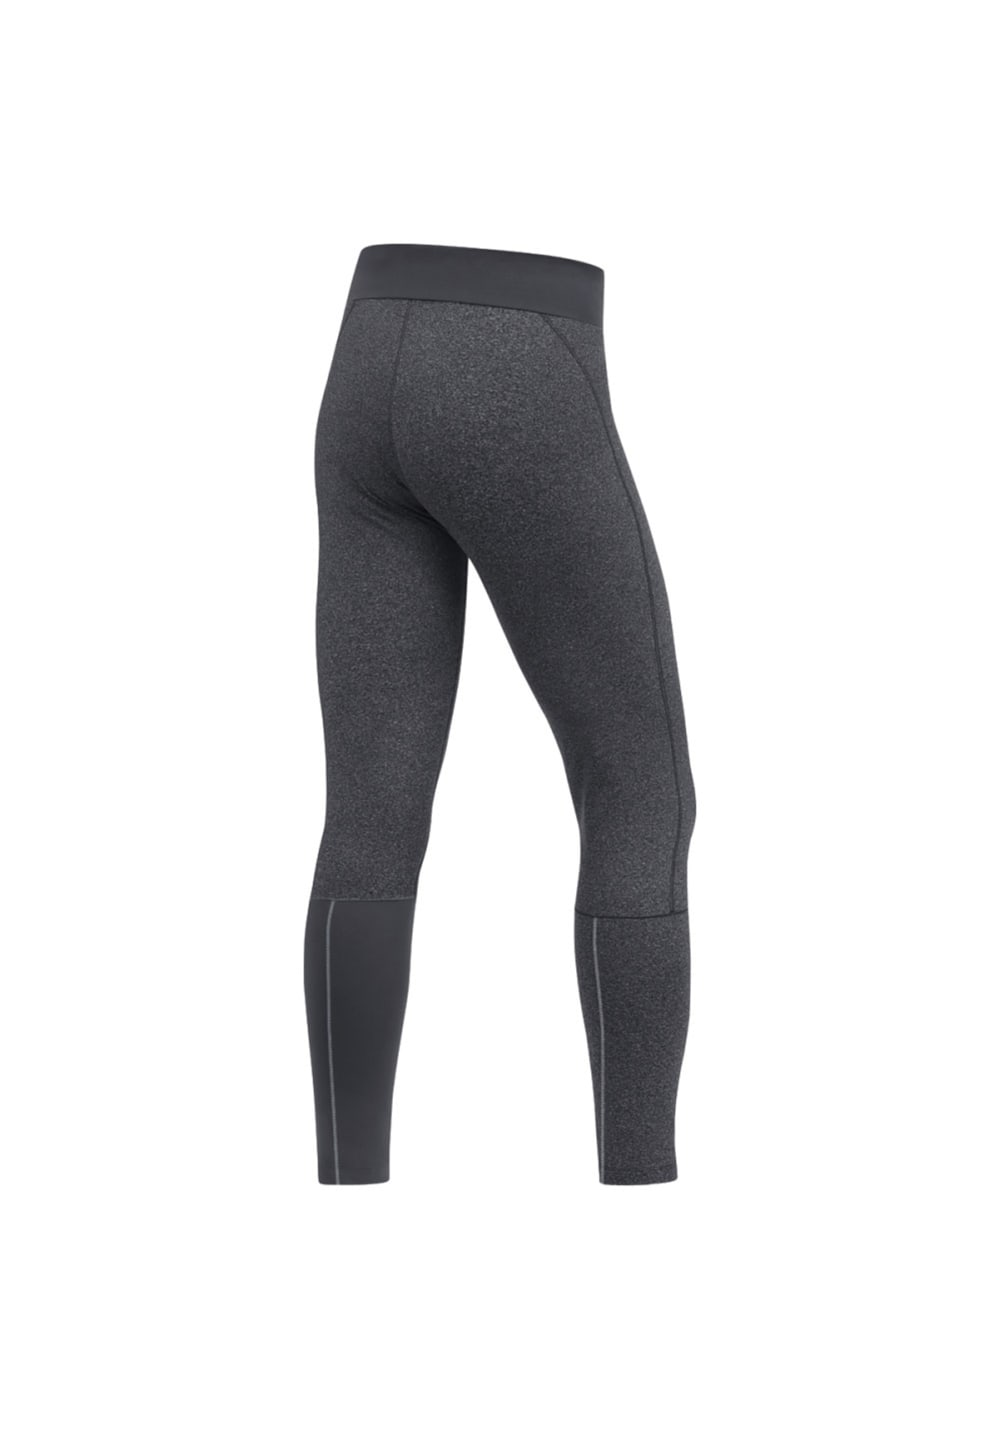 GORE RUNNING WEAR® Sunlight Thermo Pants - Running trousers for ... d7ece6c3b7a